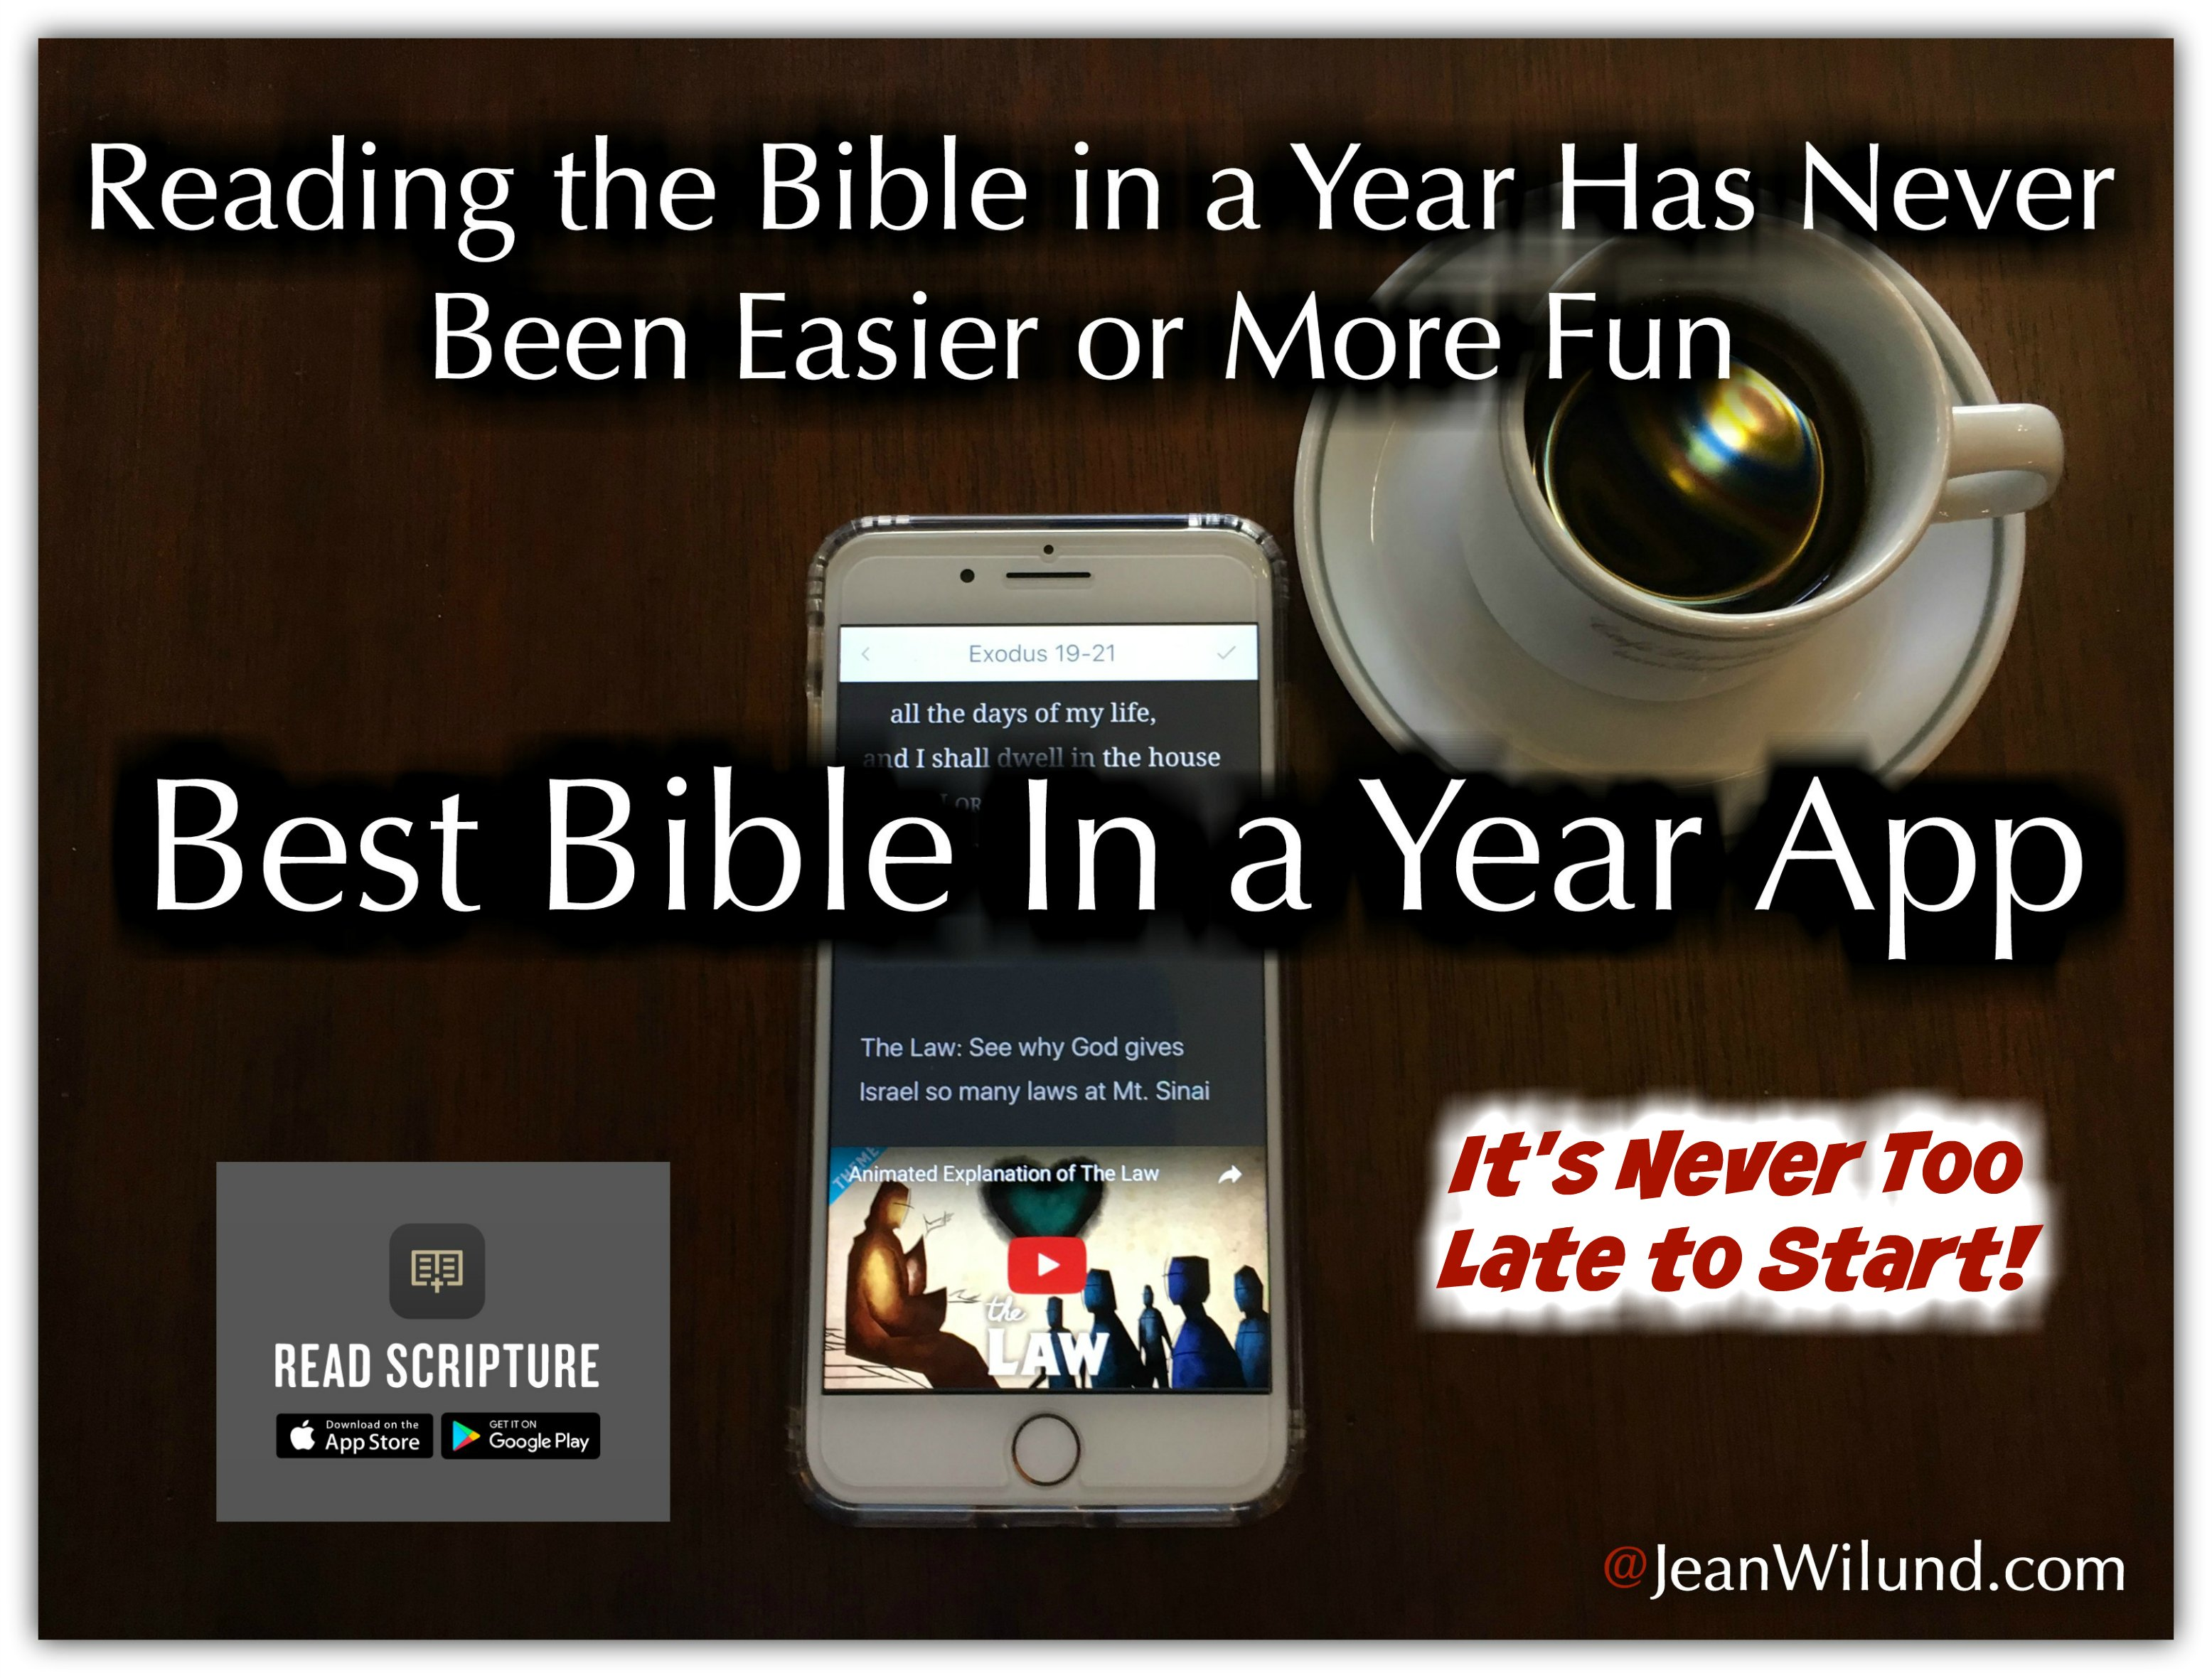 Bible Project's ReadScripture App makes reading the Bible in a Year easier and more fun. (www.JeanWilund.com)